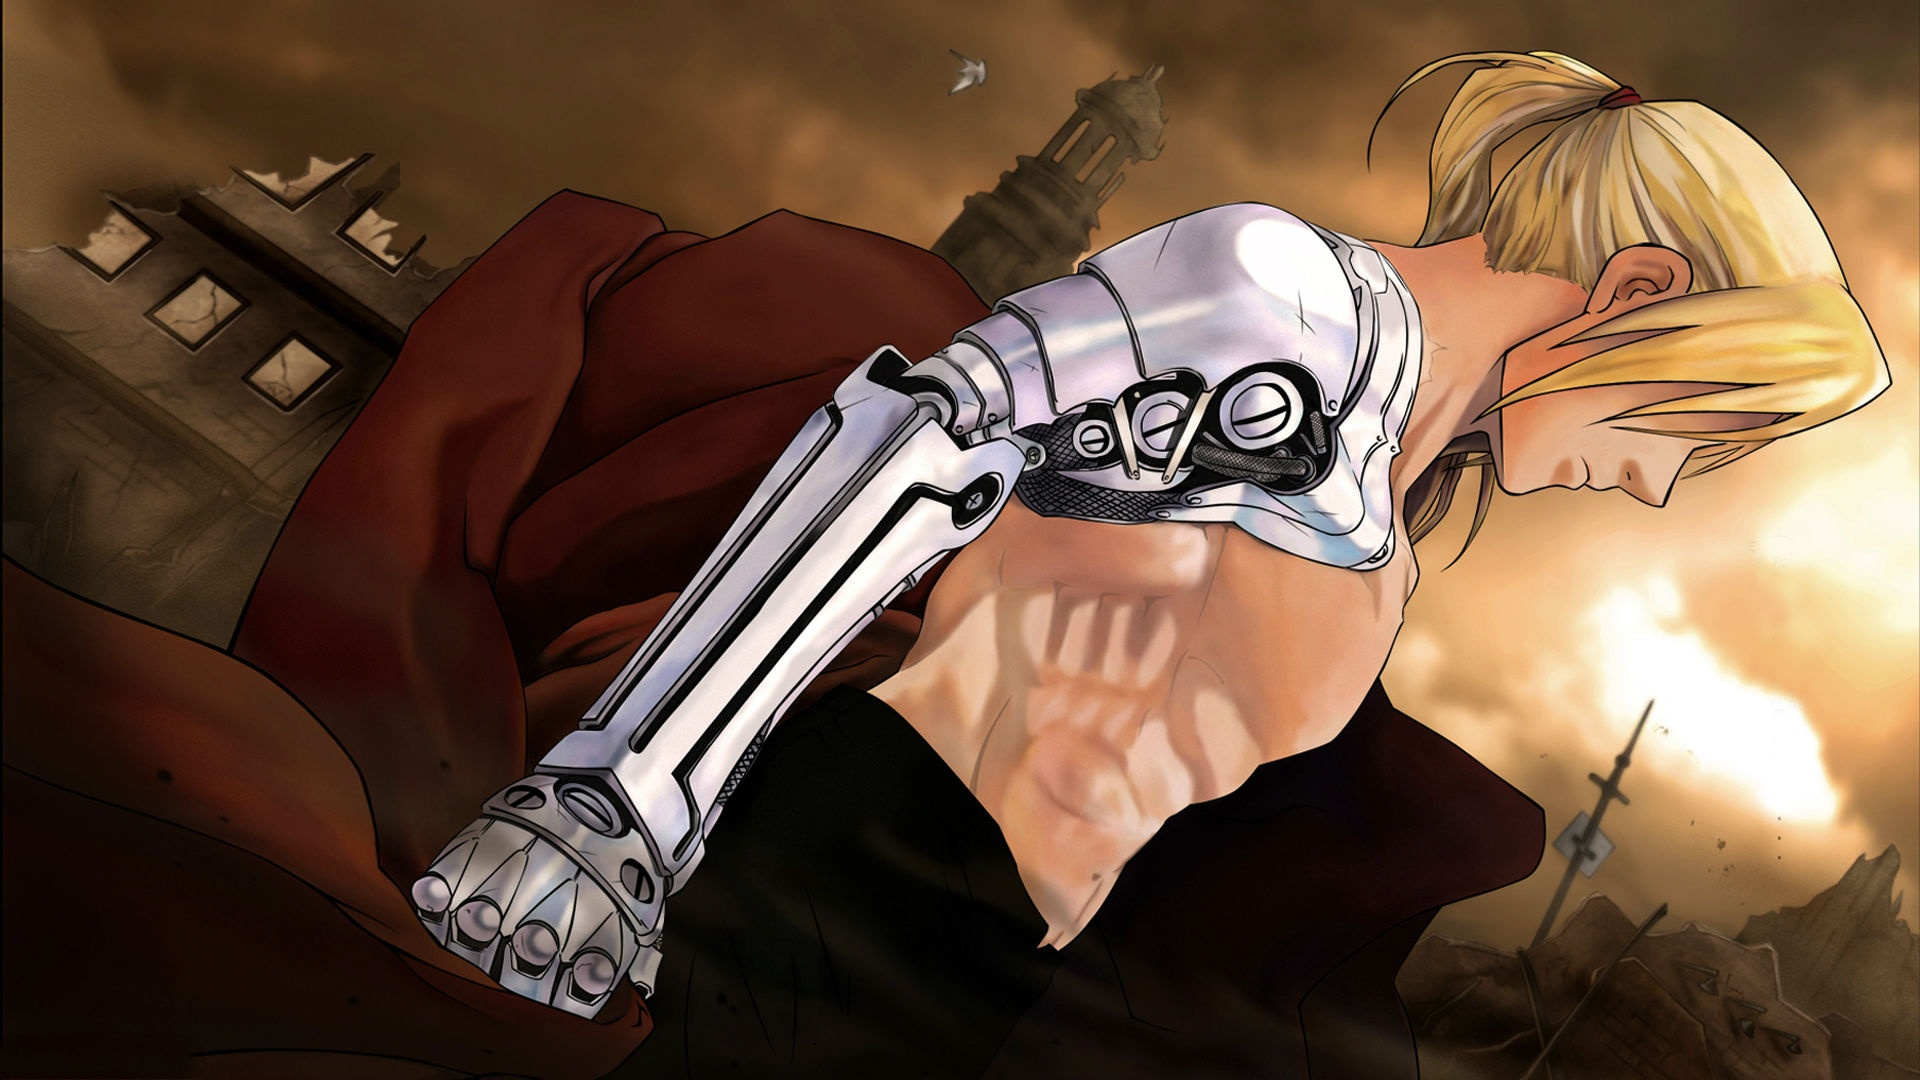 Fullmetal Alchemist Brotherhood Wallpapers   1920x1080   395588 1920x1080